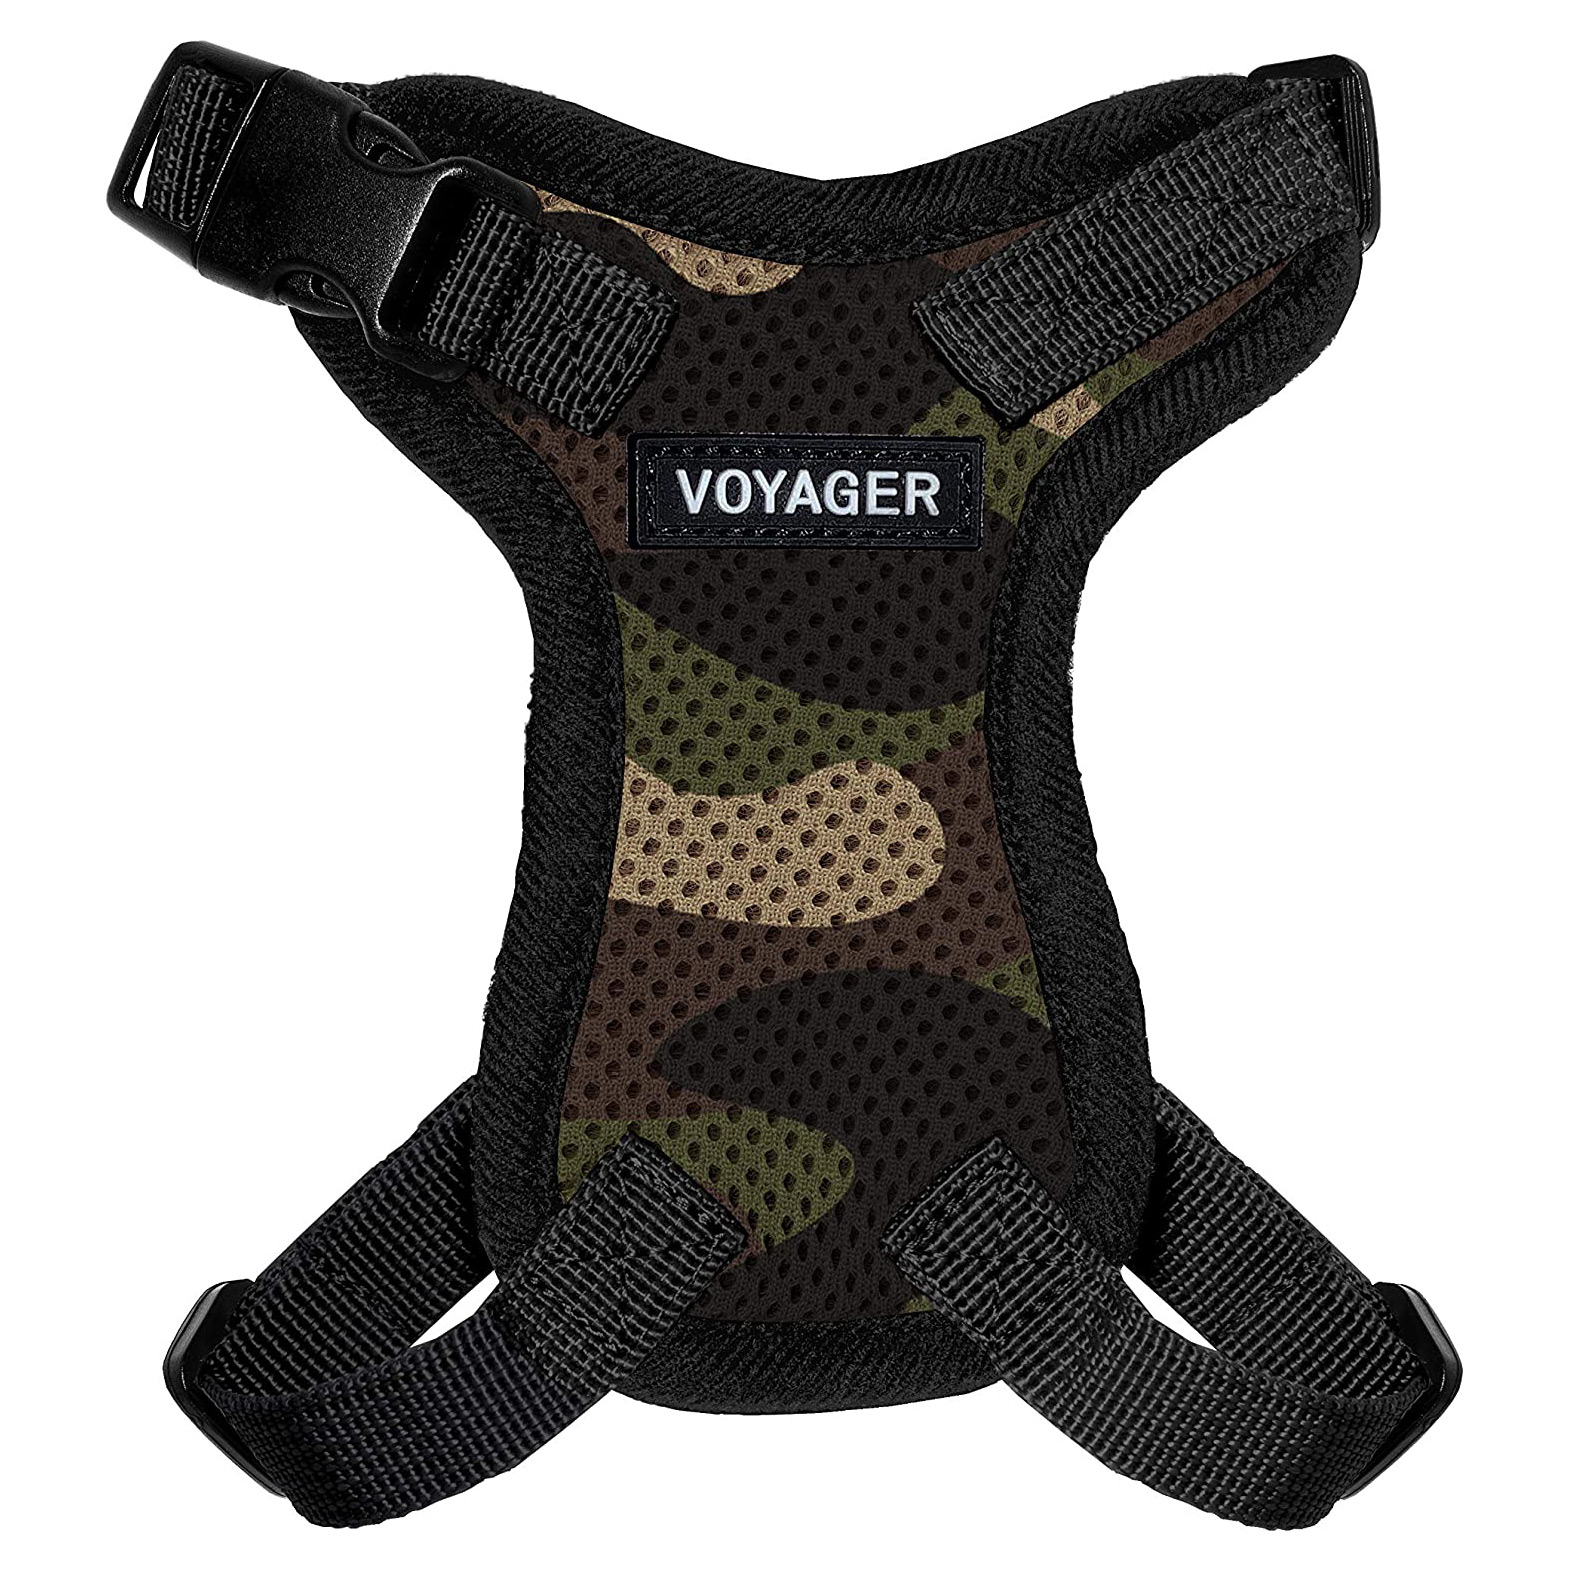 voyager-step-lock-pet-harness